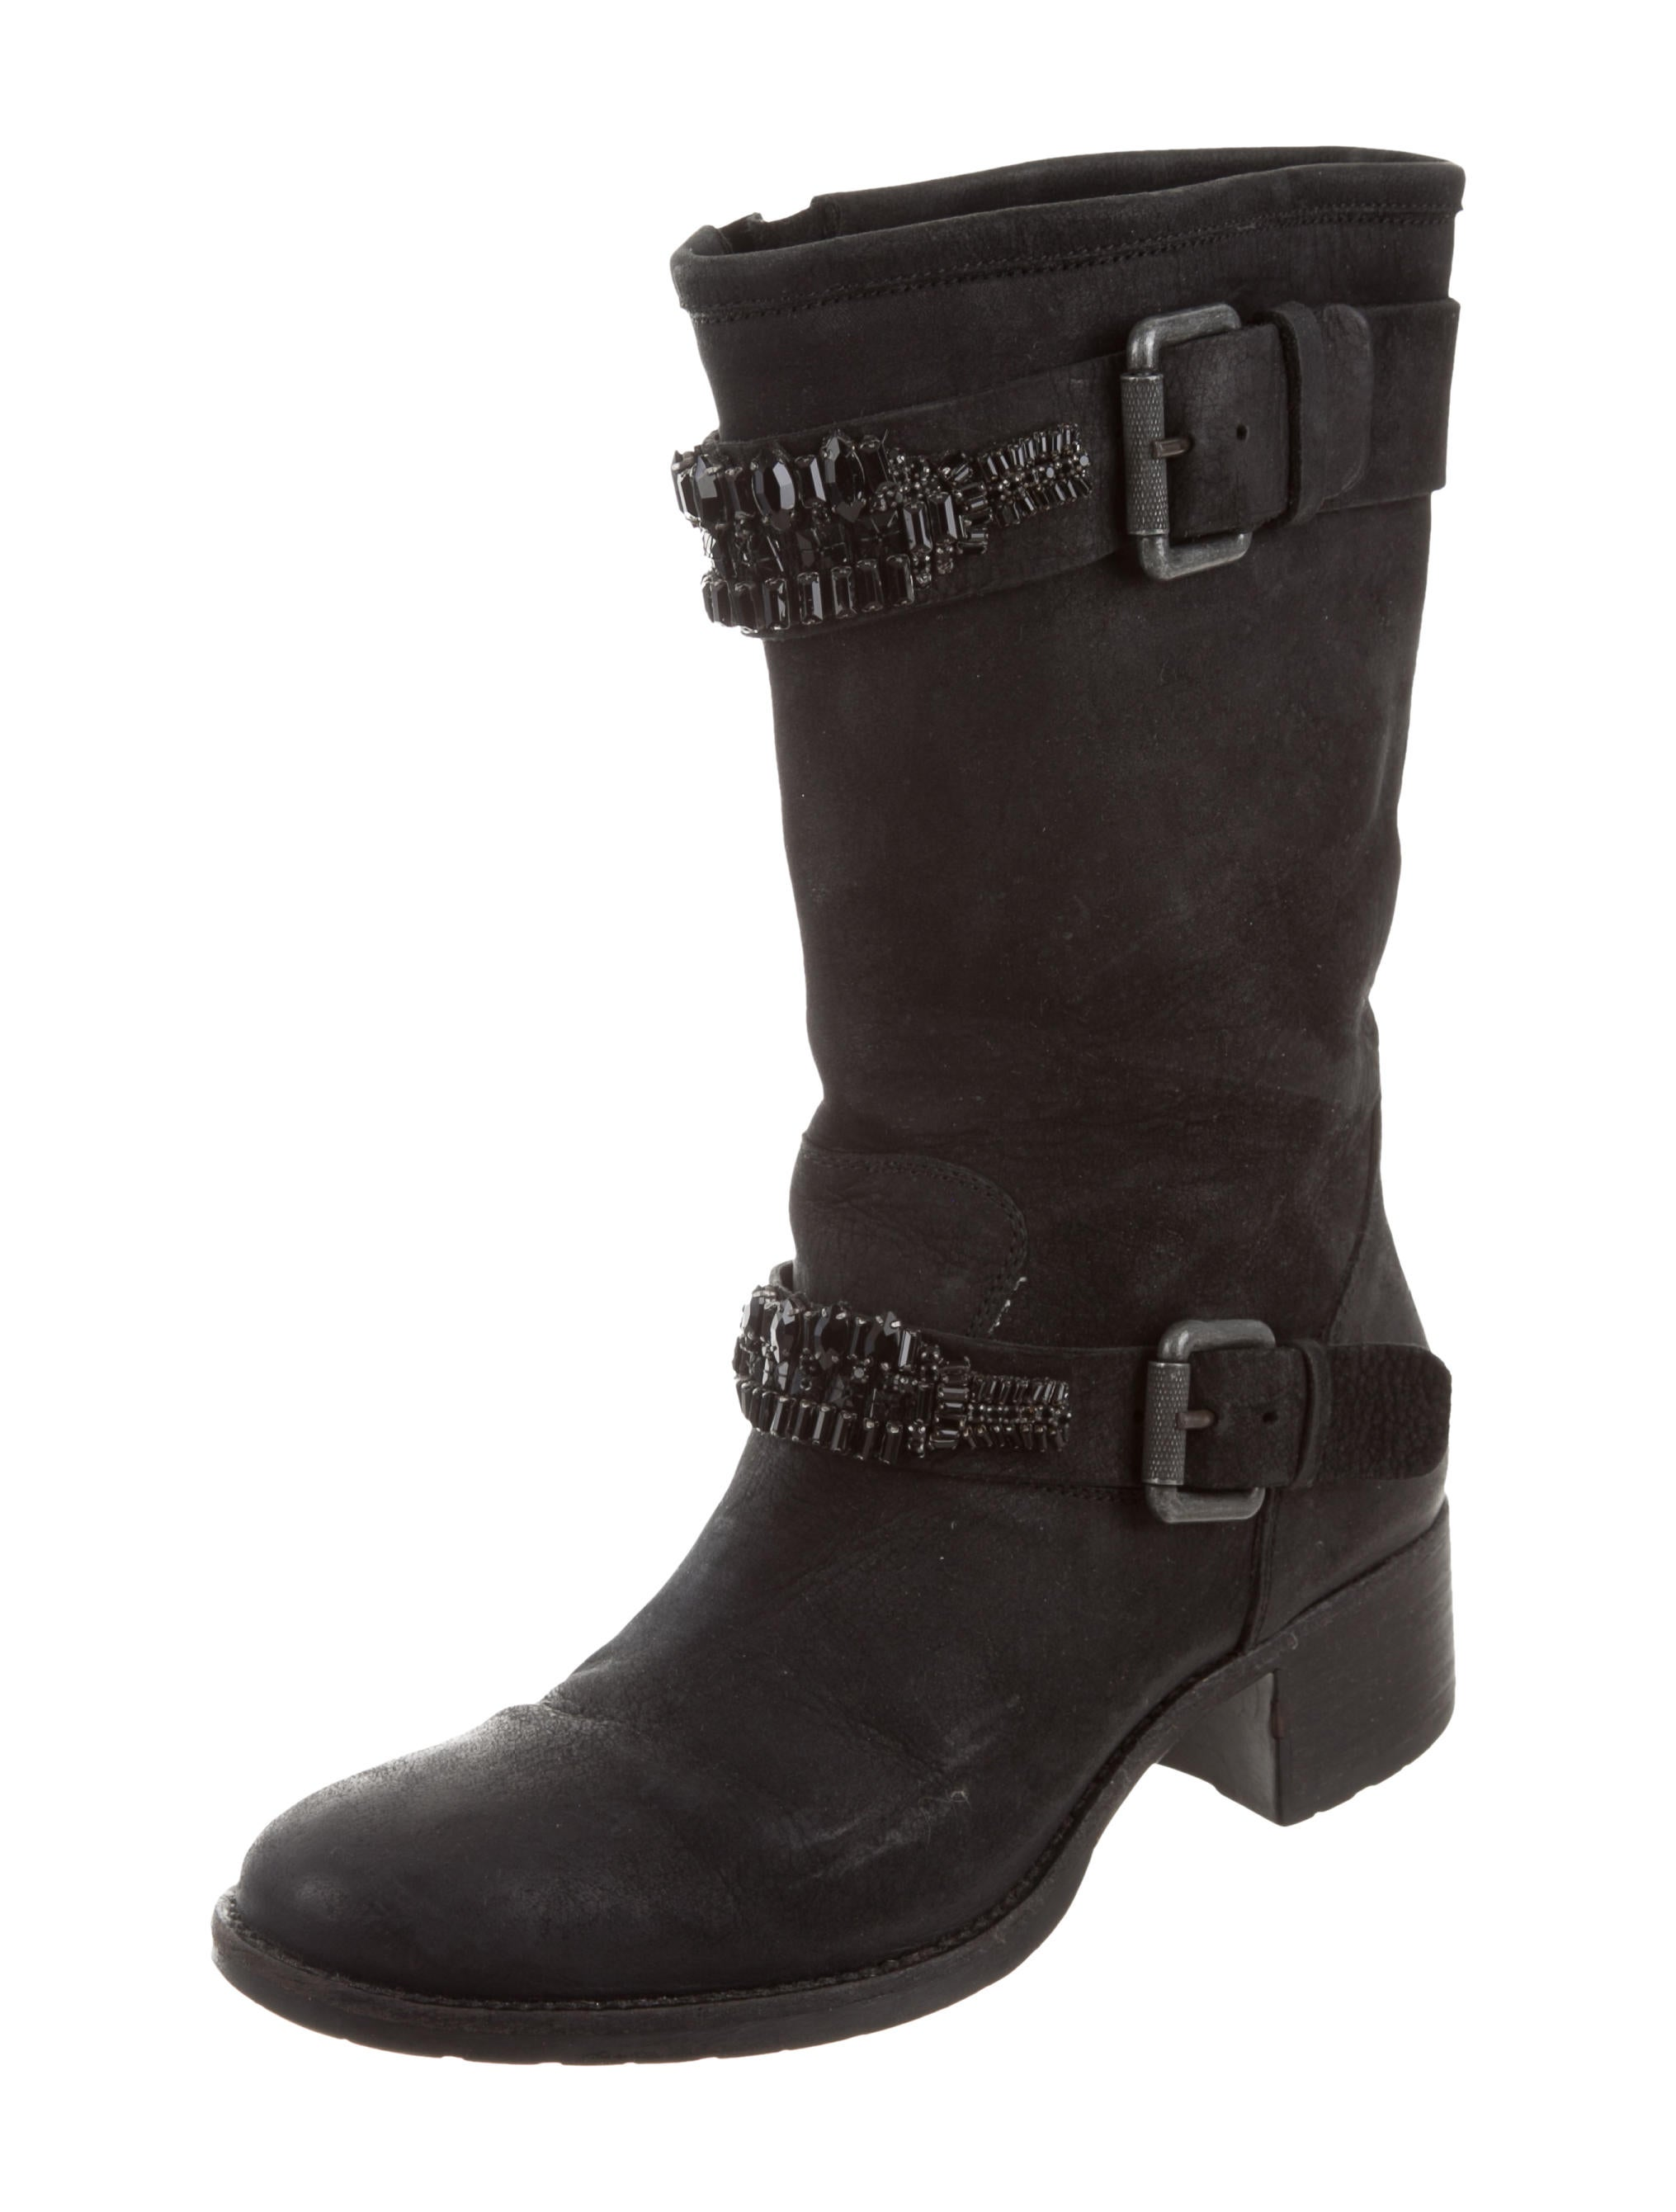 Vera Wang Lavender Label Embellished Moto Boots discount Manchester pay with paypal sale online ql2Mx